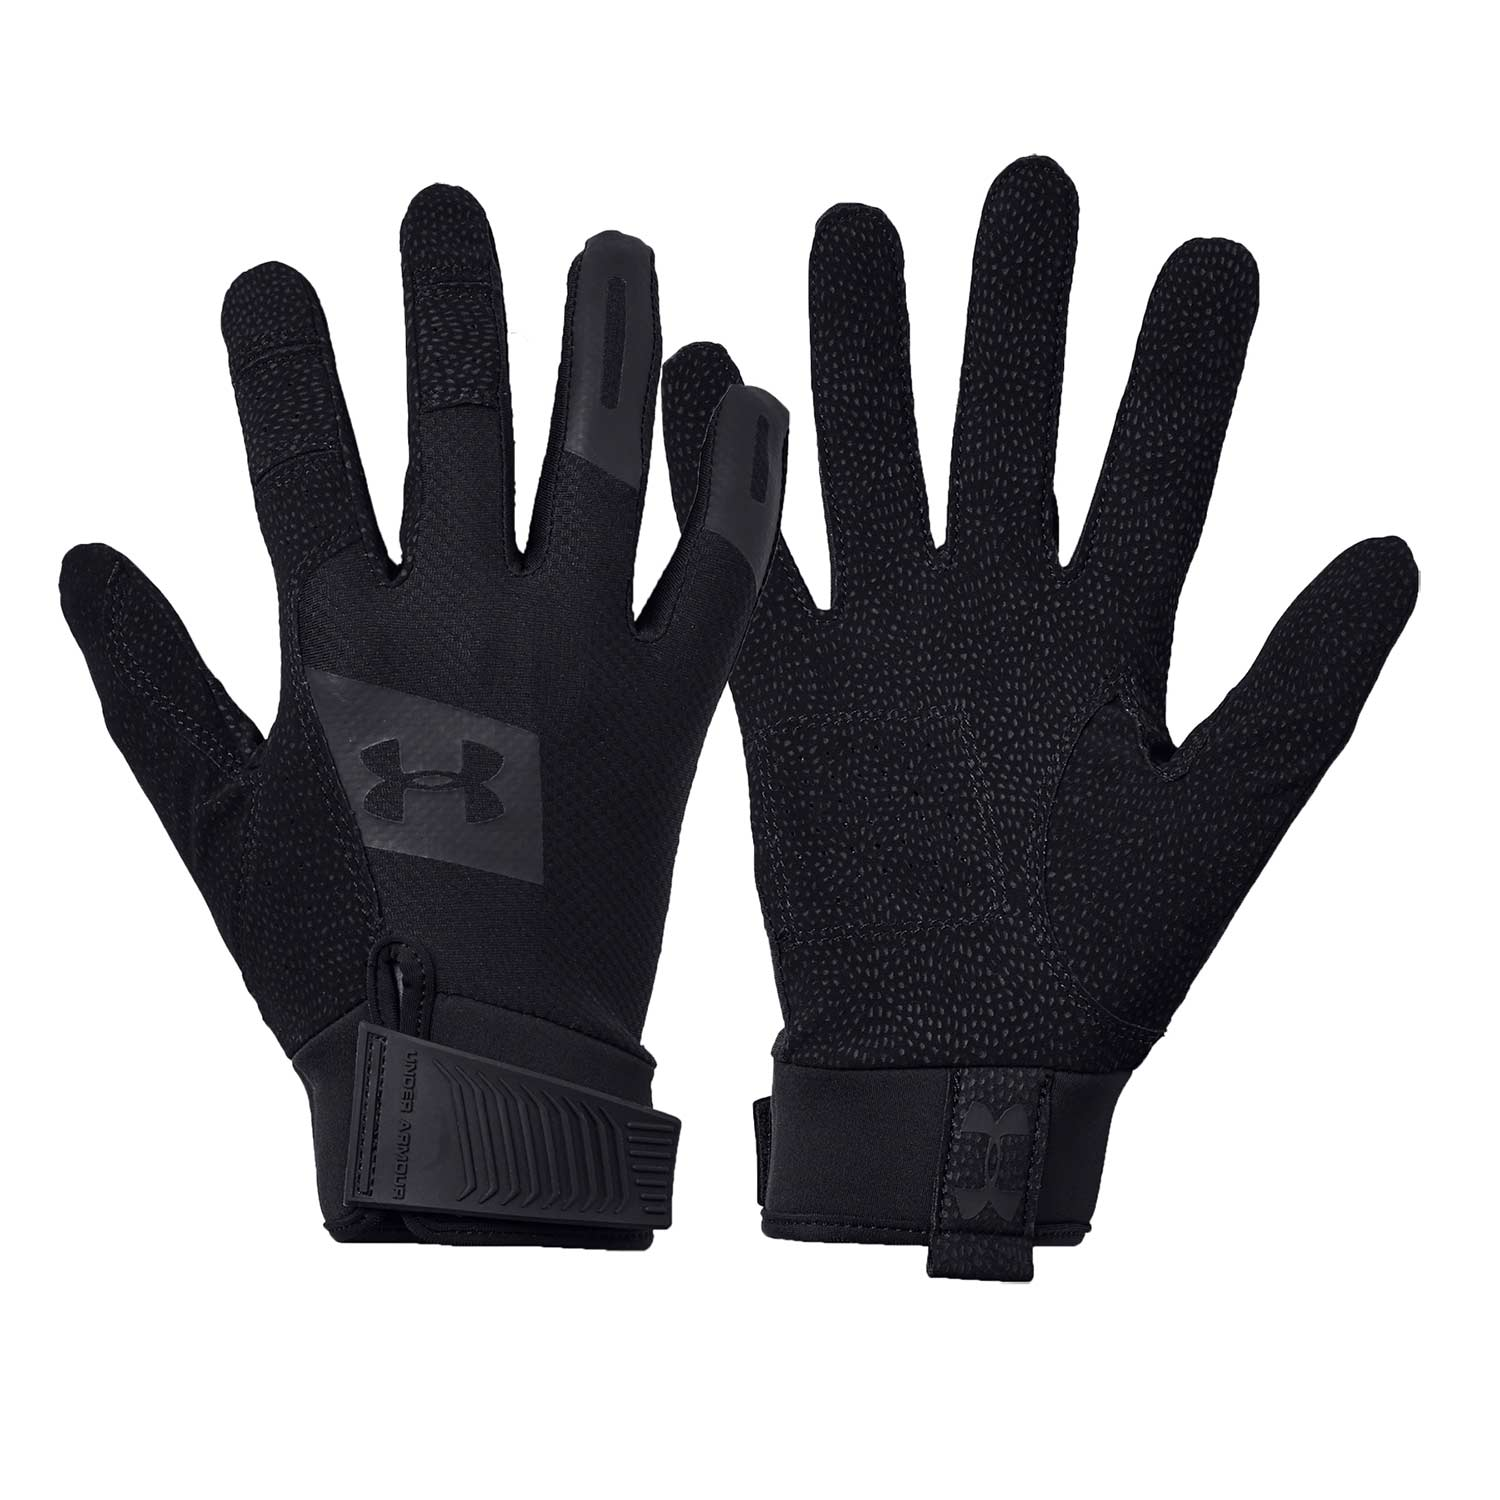 Under Armour Blackout 2.0 Gloves